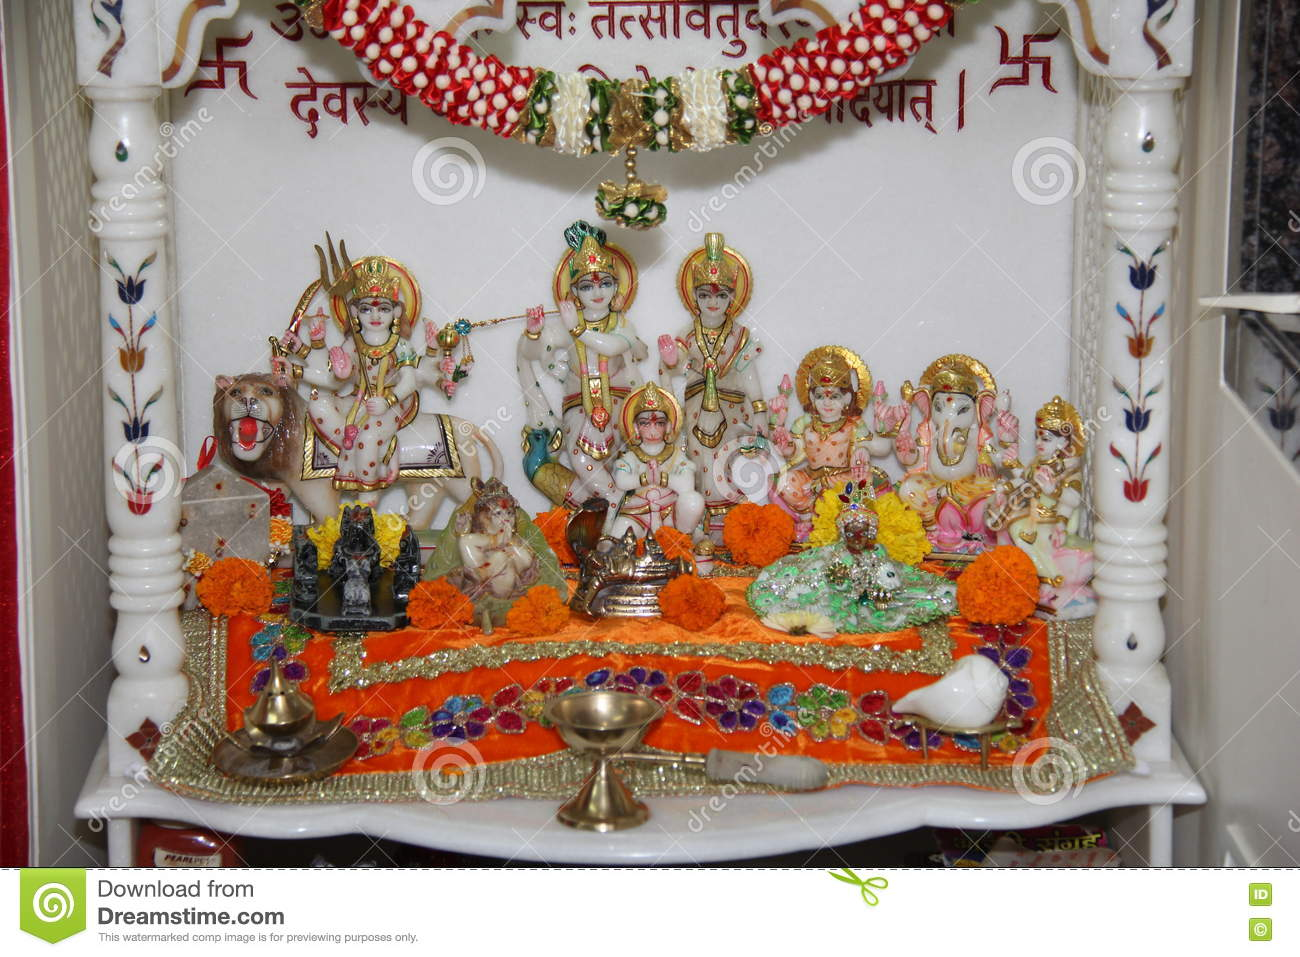 Best Kitchen Gallery: Hindu Temple Stock Photo Image Of Bless Religion Idols 77127944 of Hindu Altar At Home on rachelxblog.com